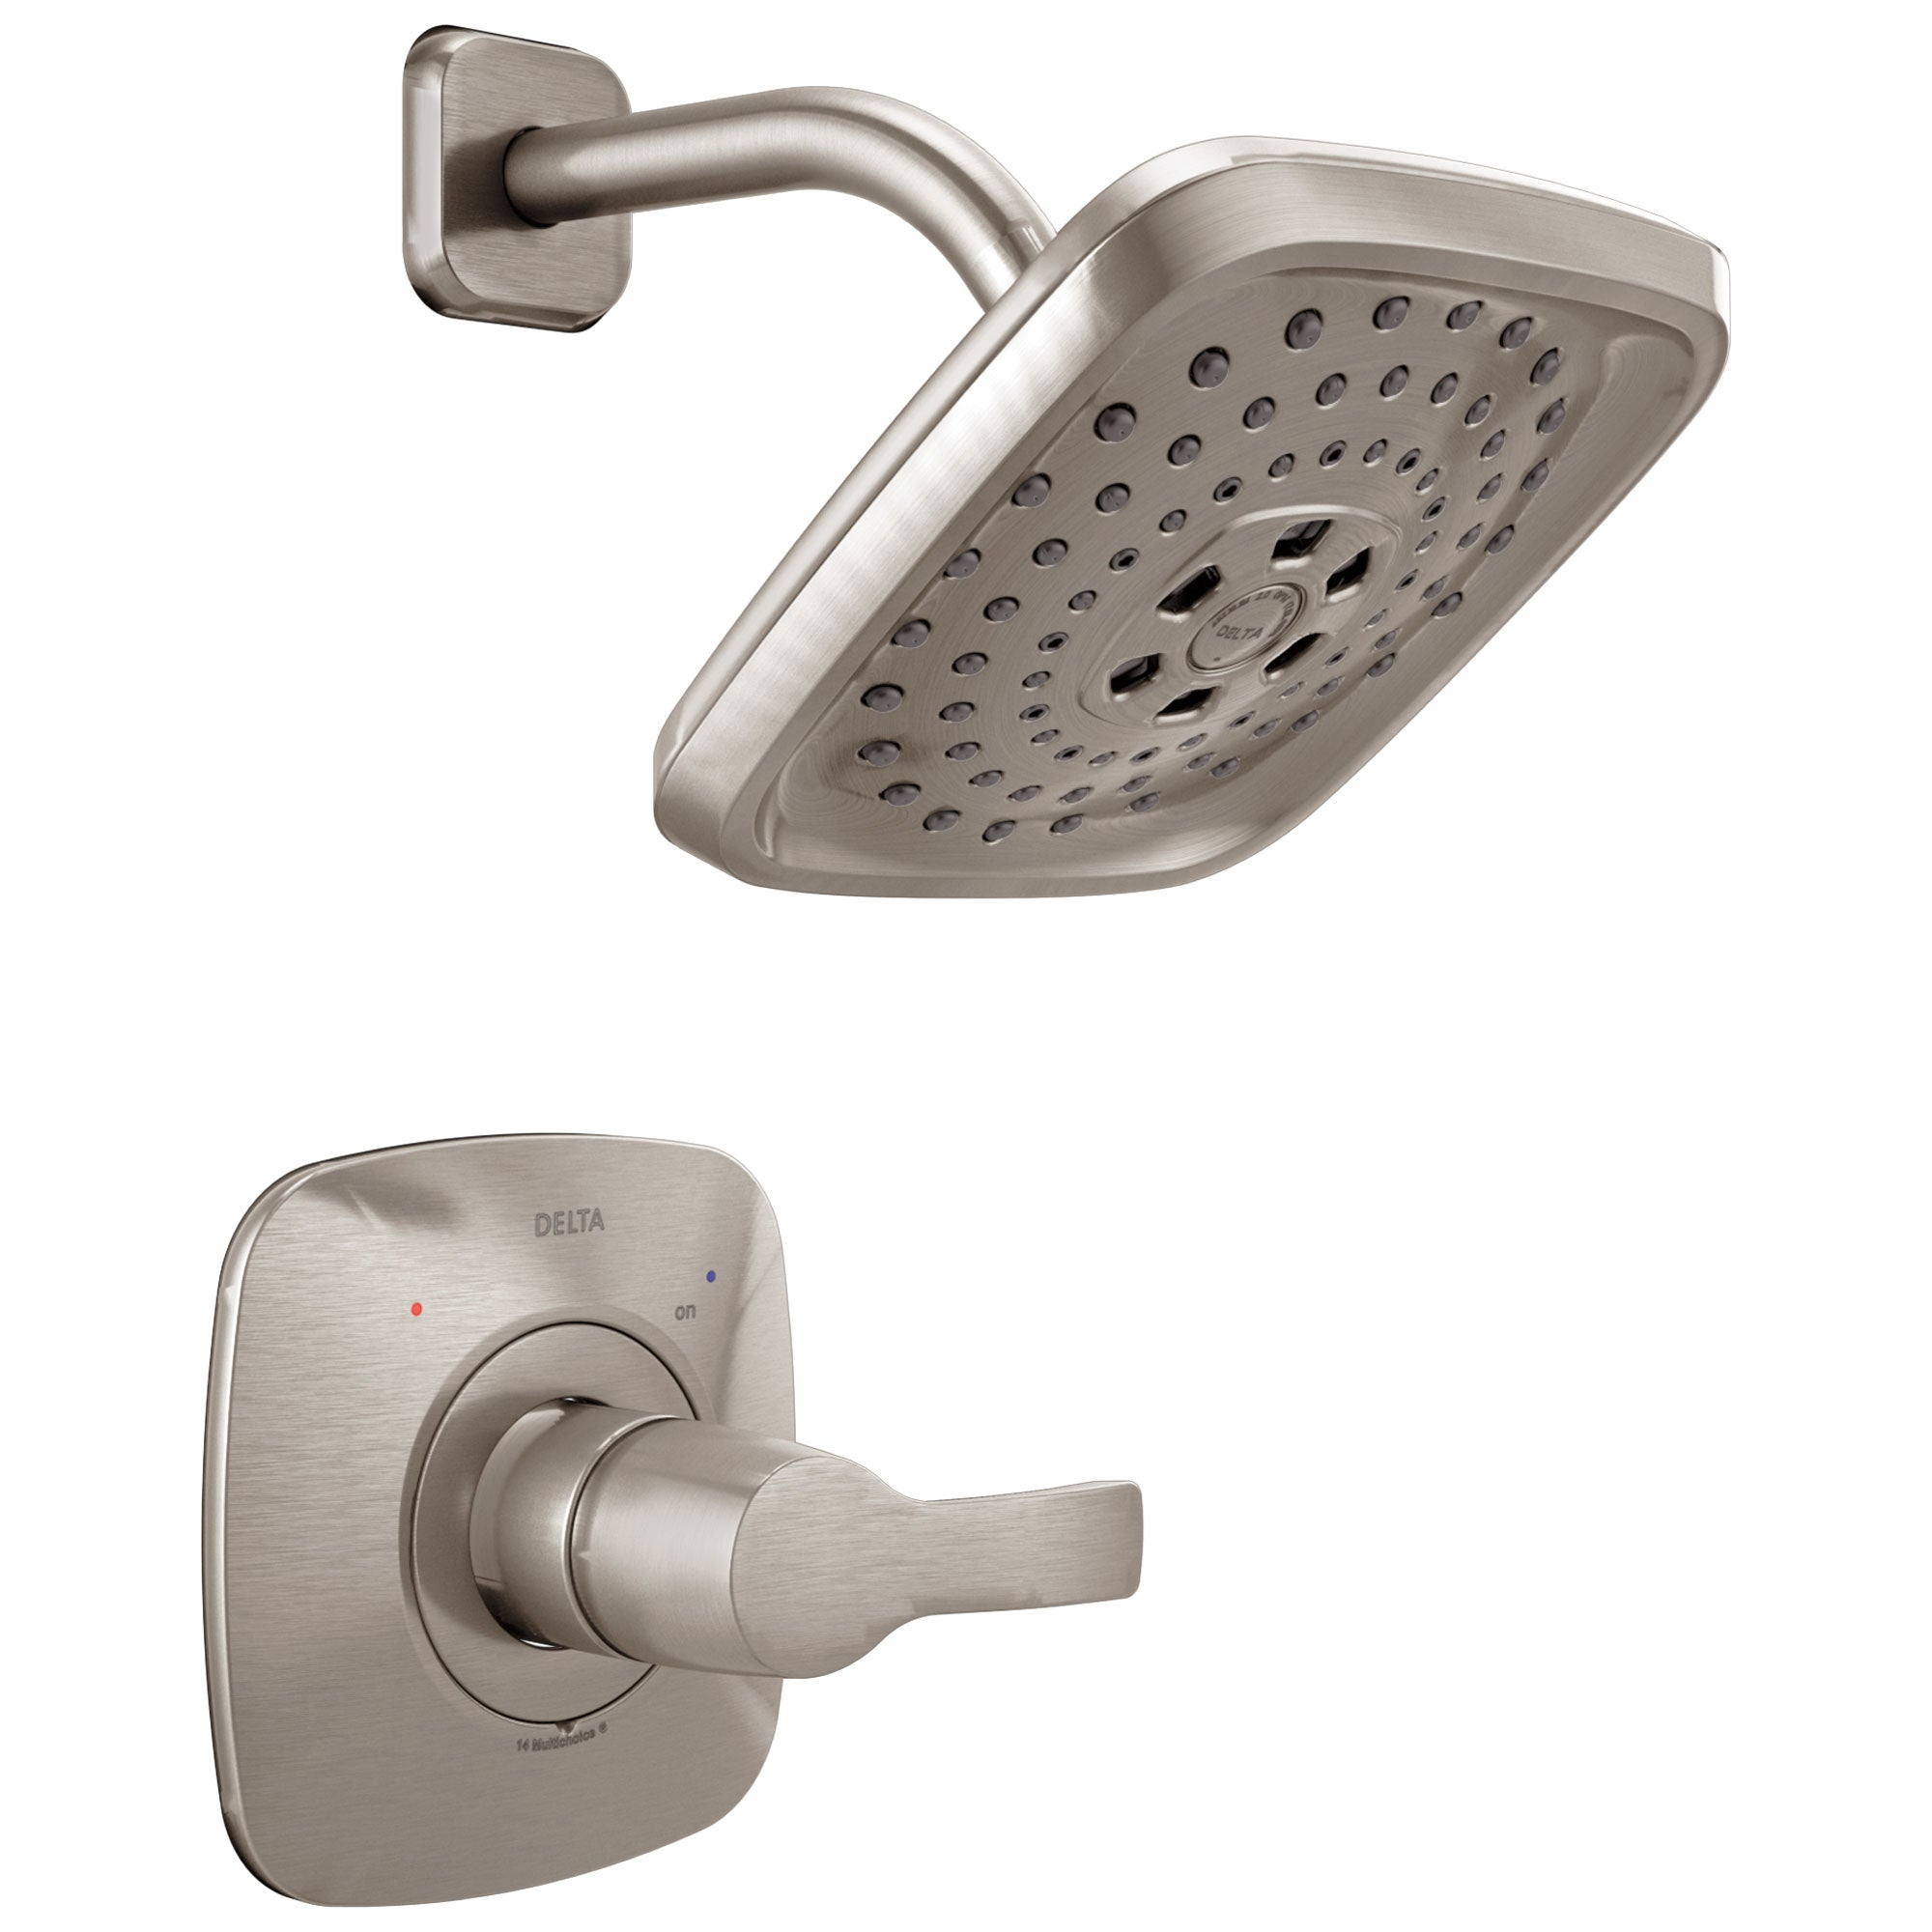 Delta Tesla H2Okinetic 1-Handle Shower Faucet in Stainless Steel Finish Includes Rough-in Valve without Stops D2584V